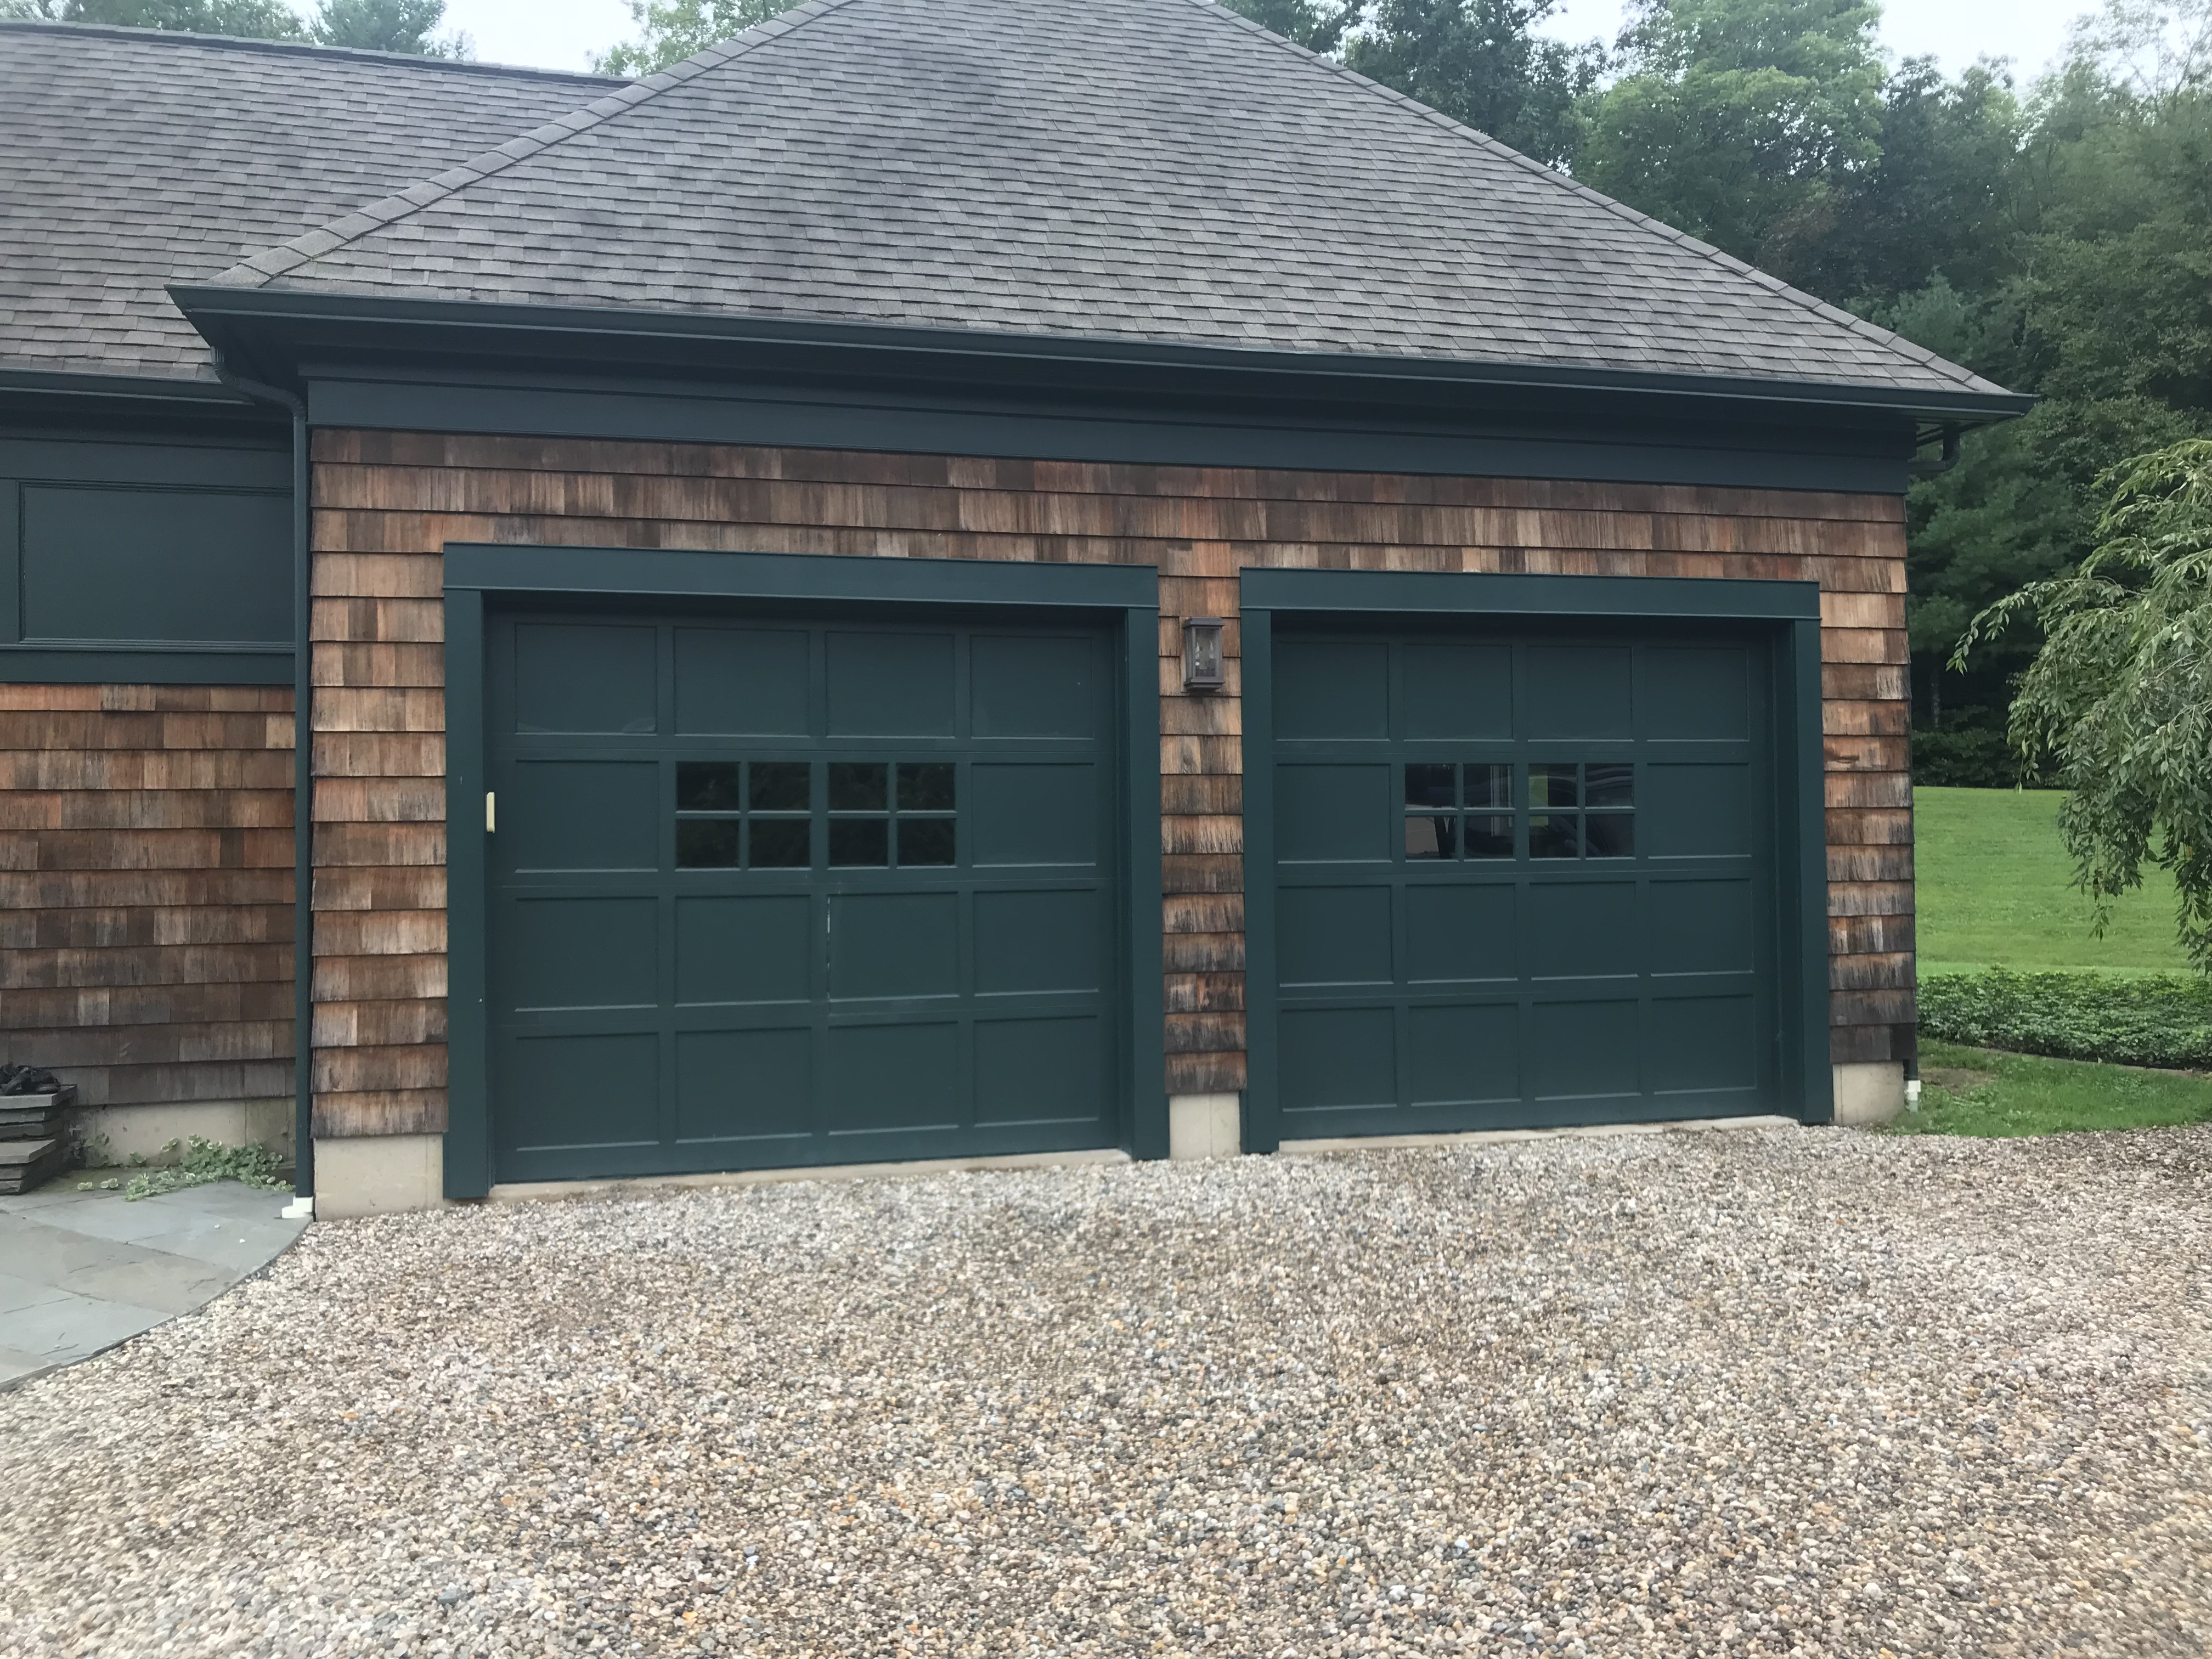 Protect your vehicles and your home with well maintained garage doors